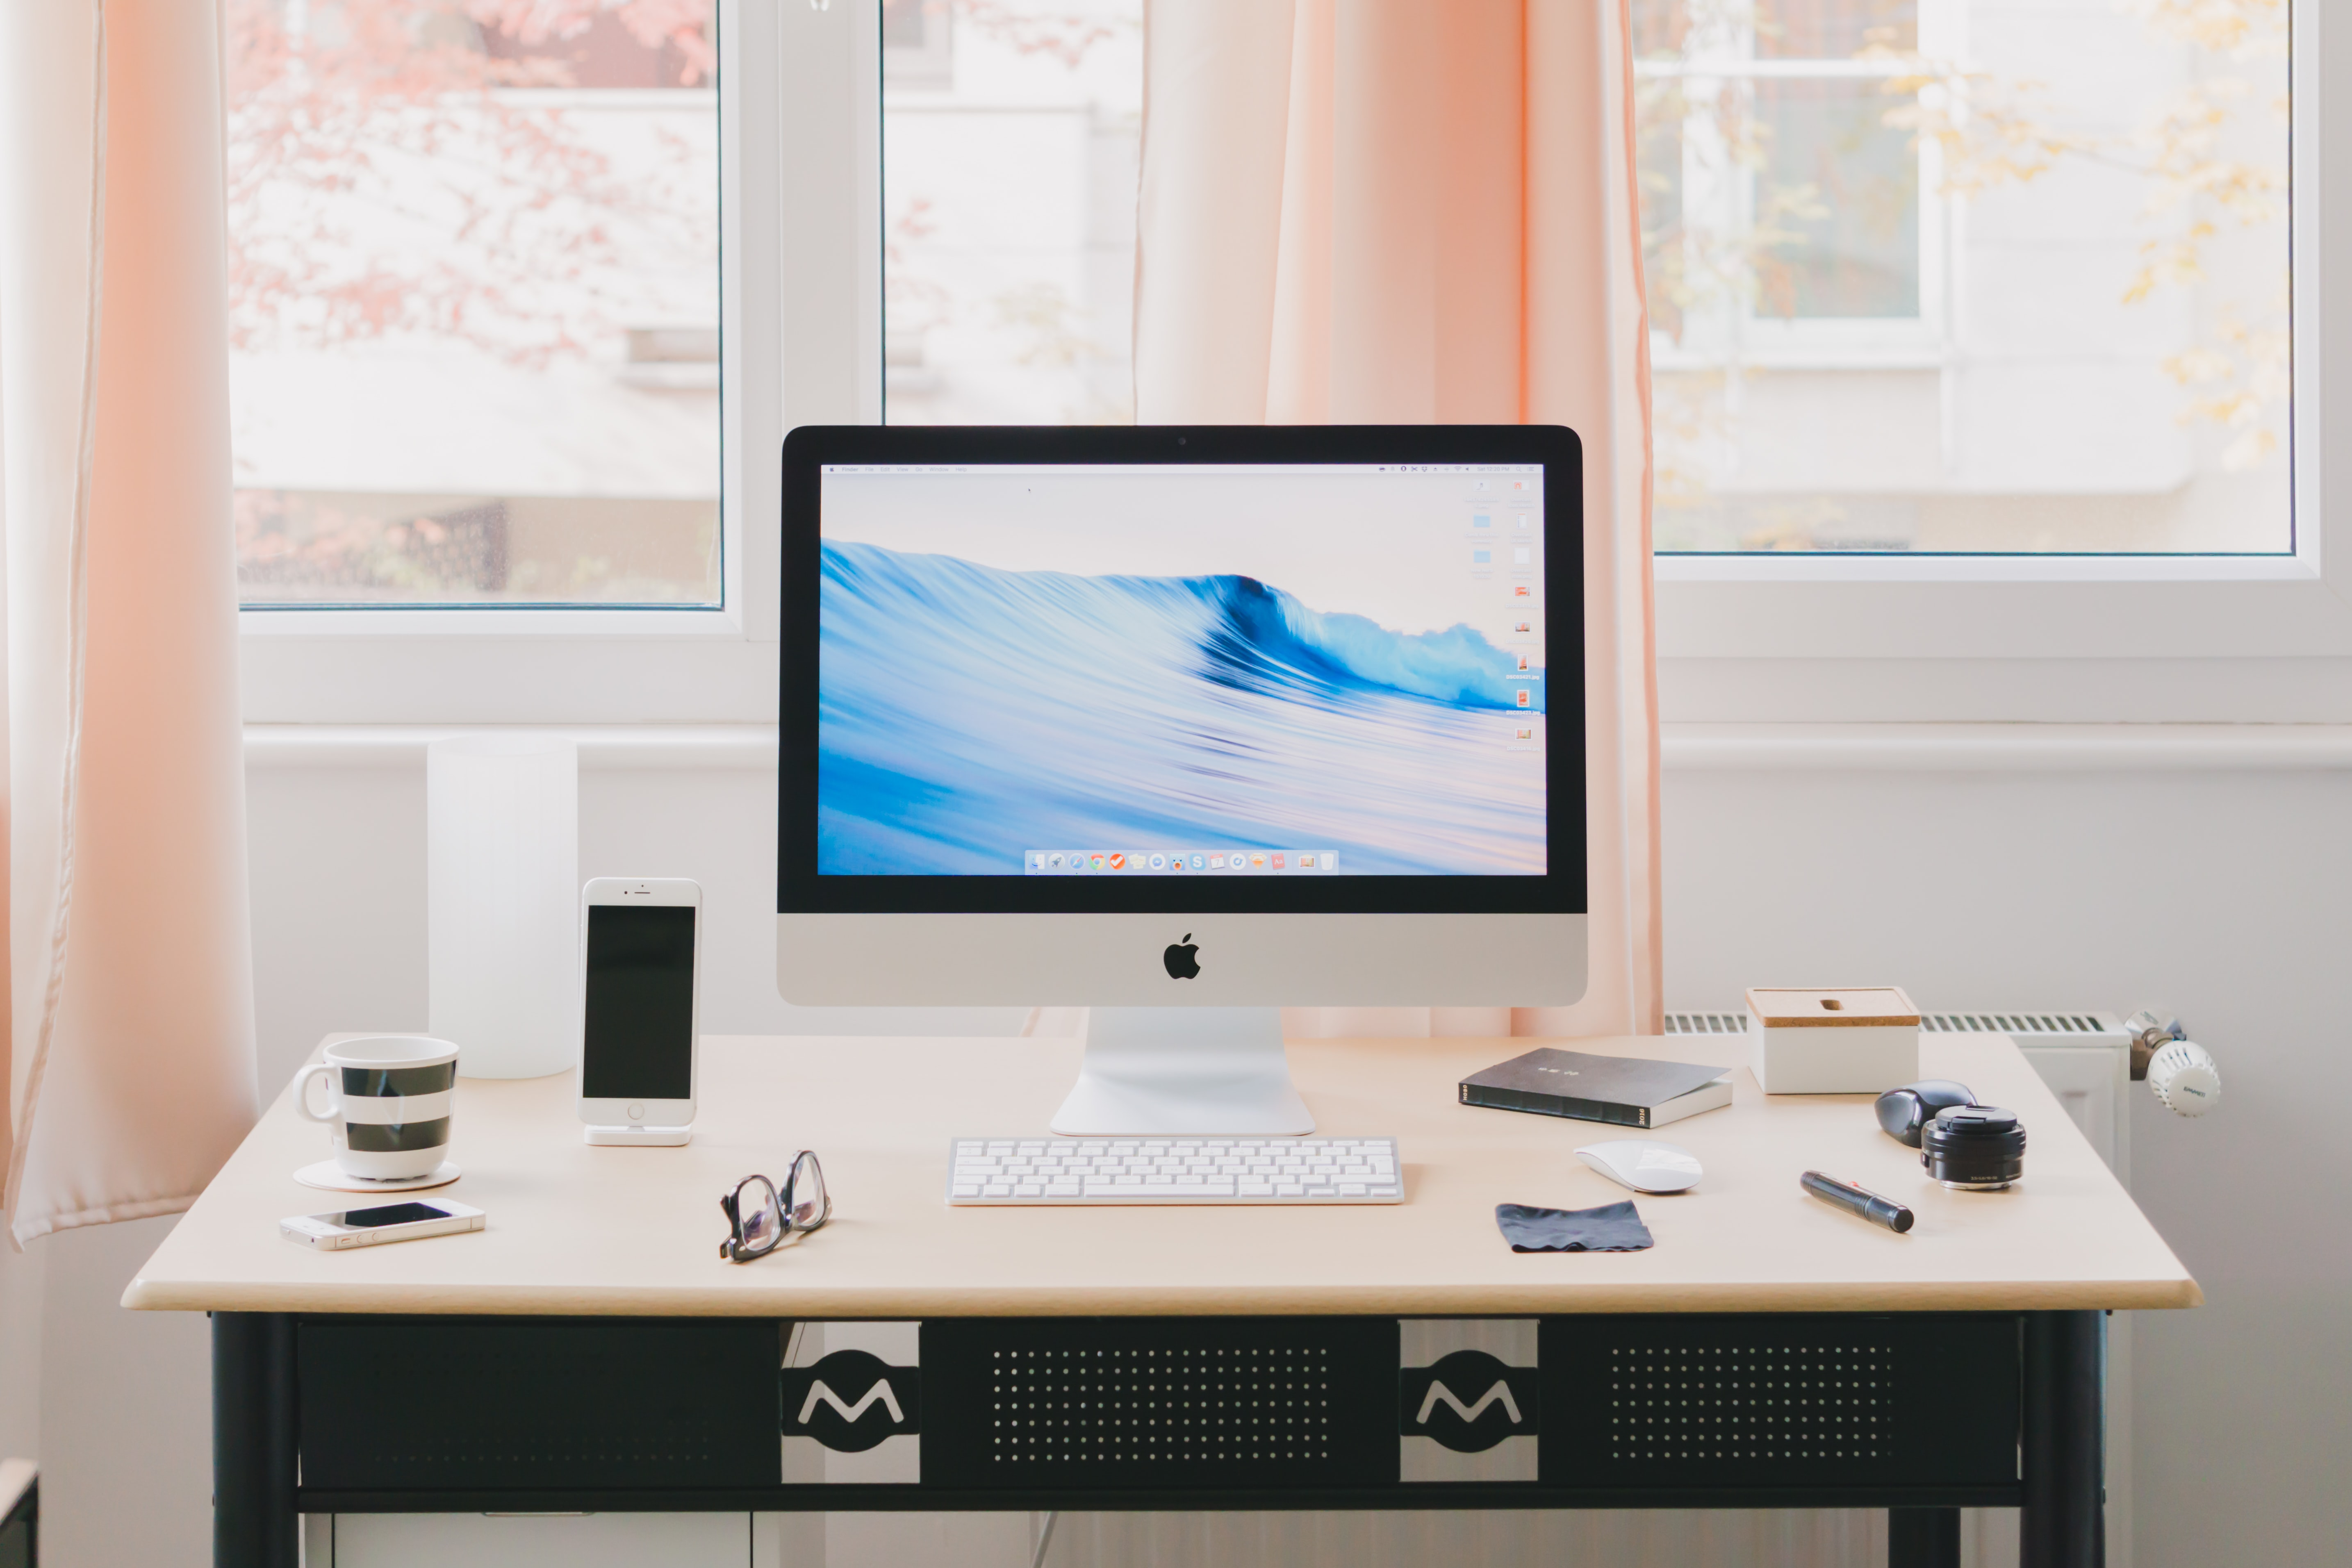 A desk with an iMac computer, a coffee cup and various accessories